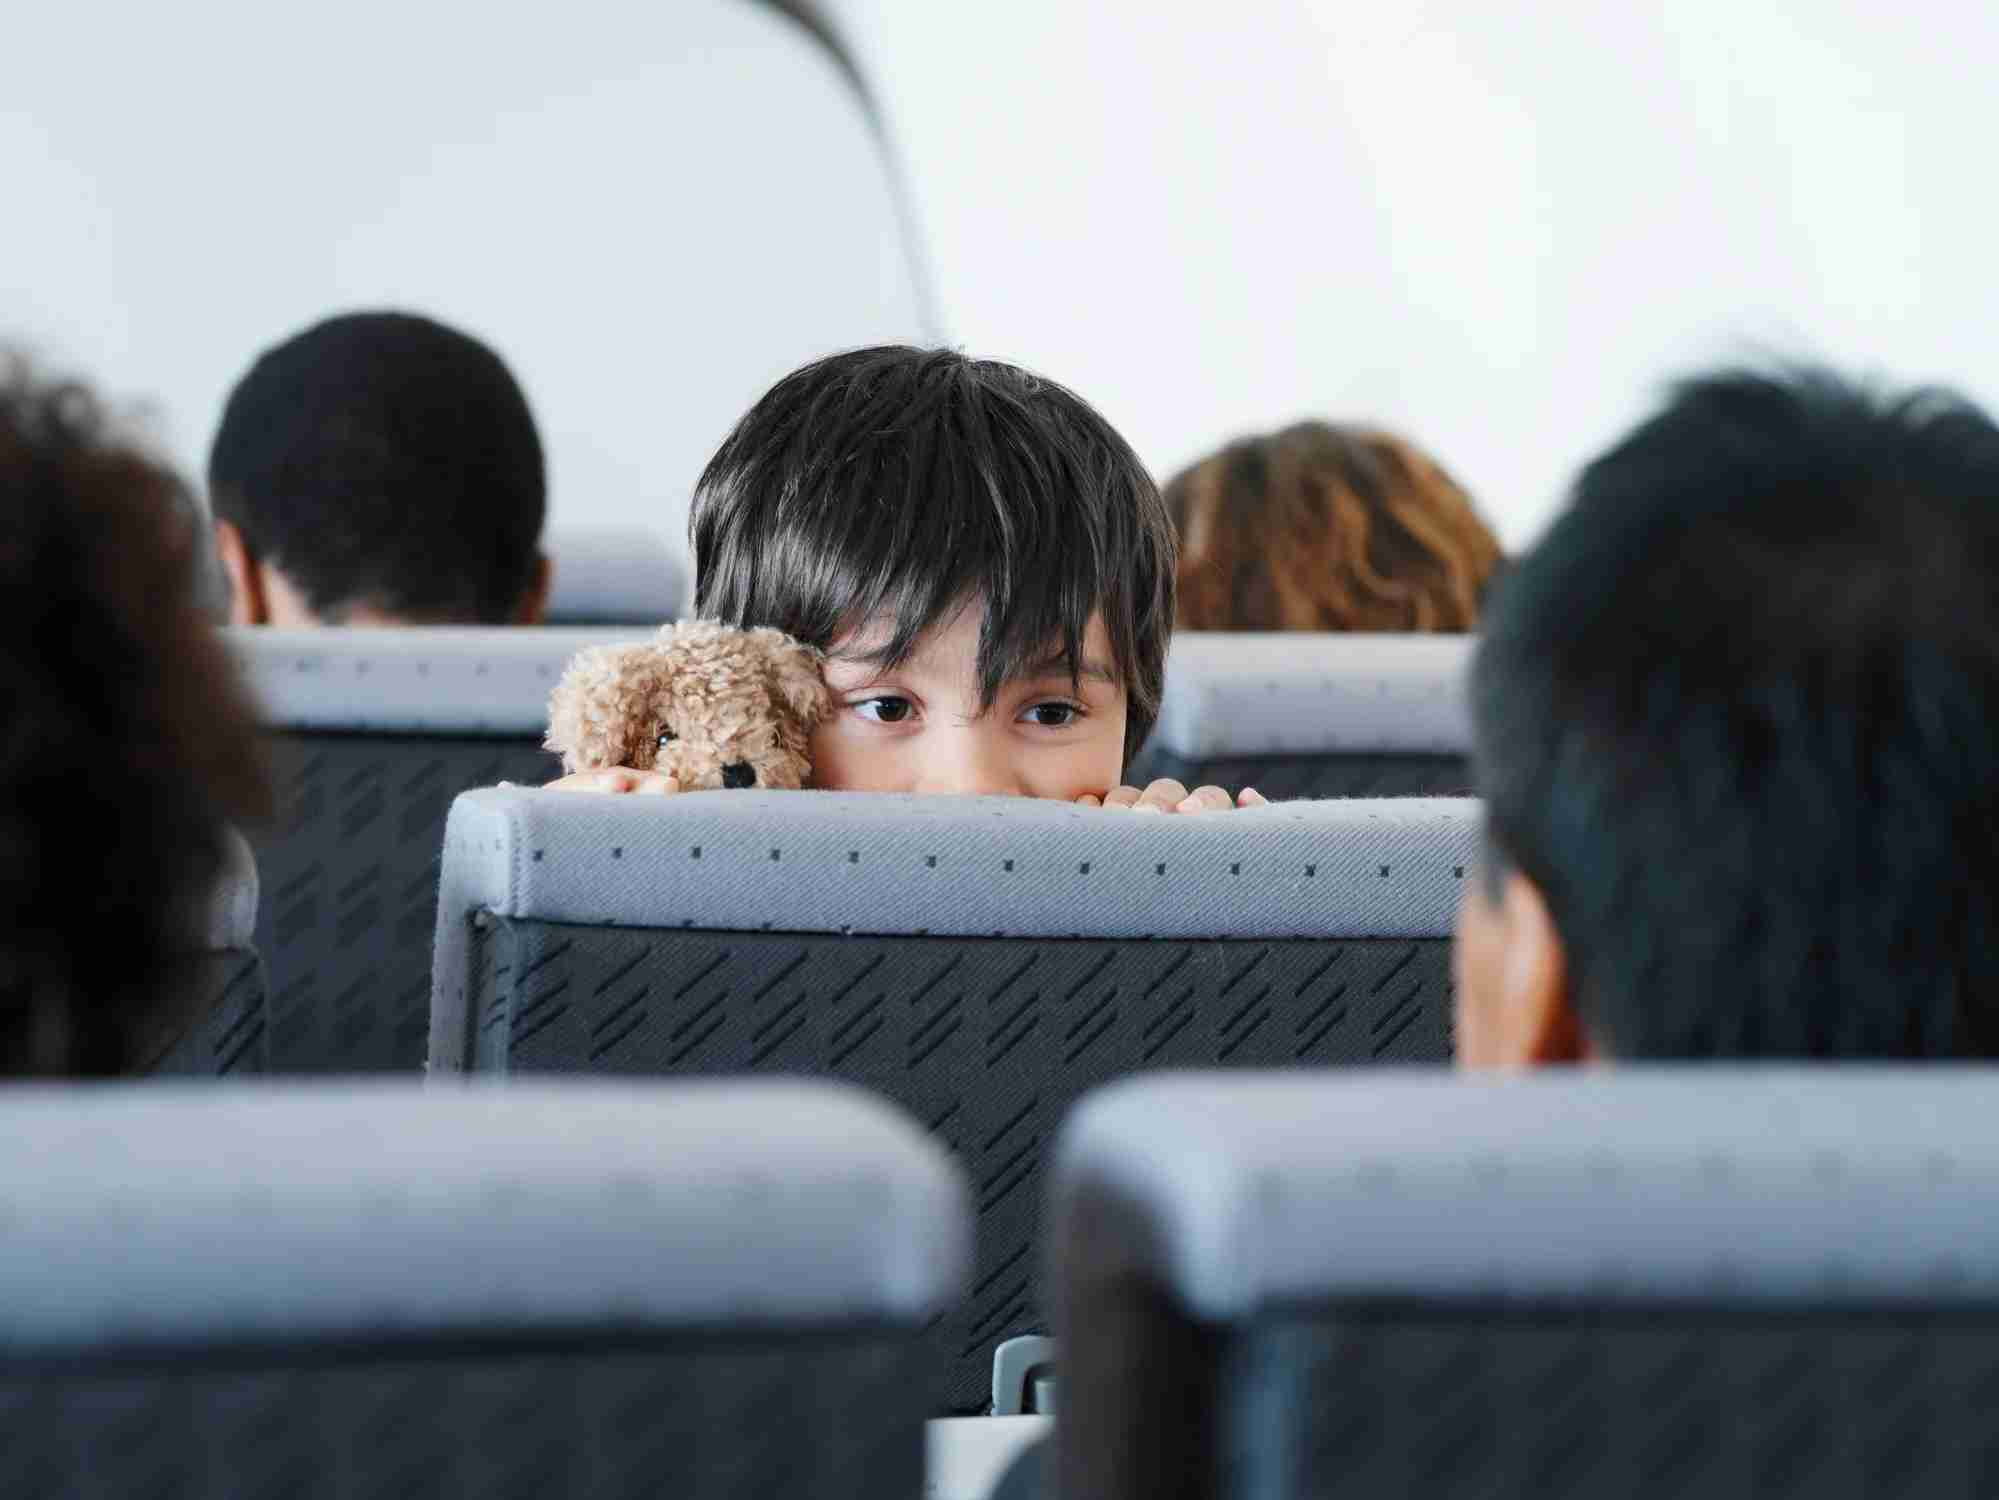 Keeping an eye on your little ones while sitting in coach makes travel easier for everyone. Image courtesy of ColorBlind Images via Getty Images.